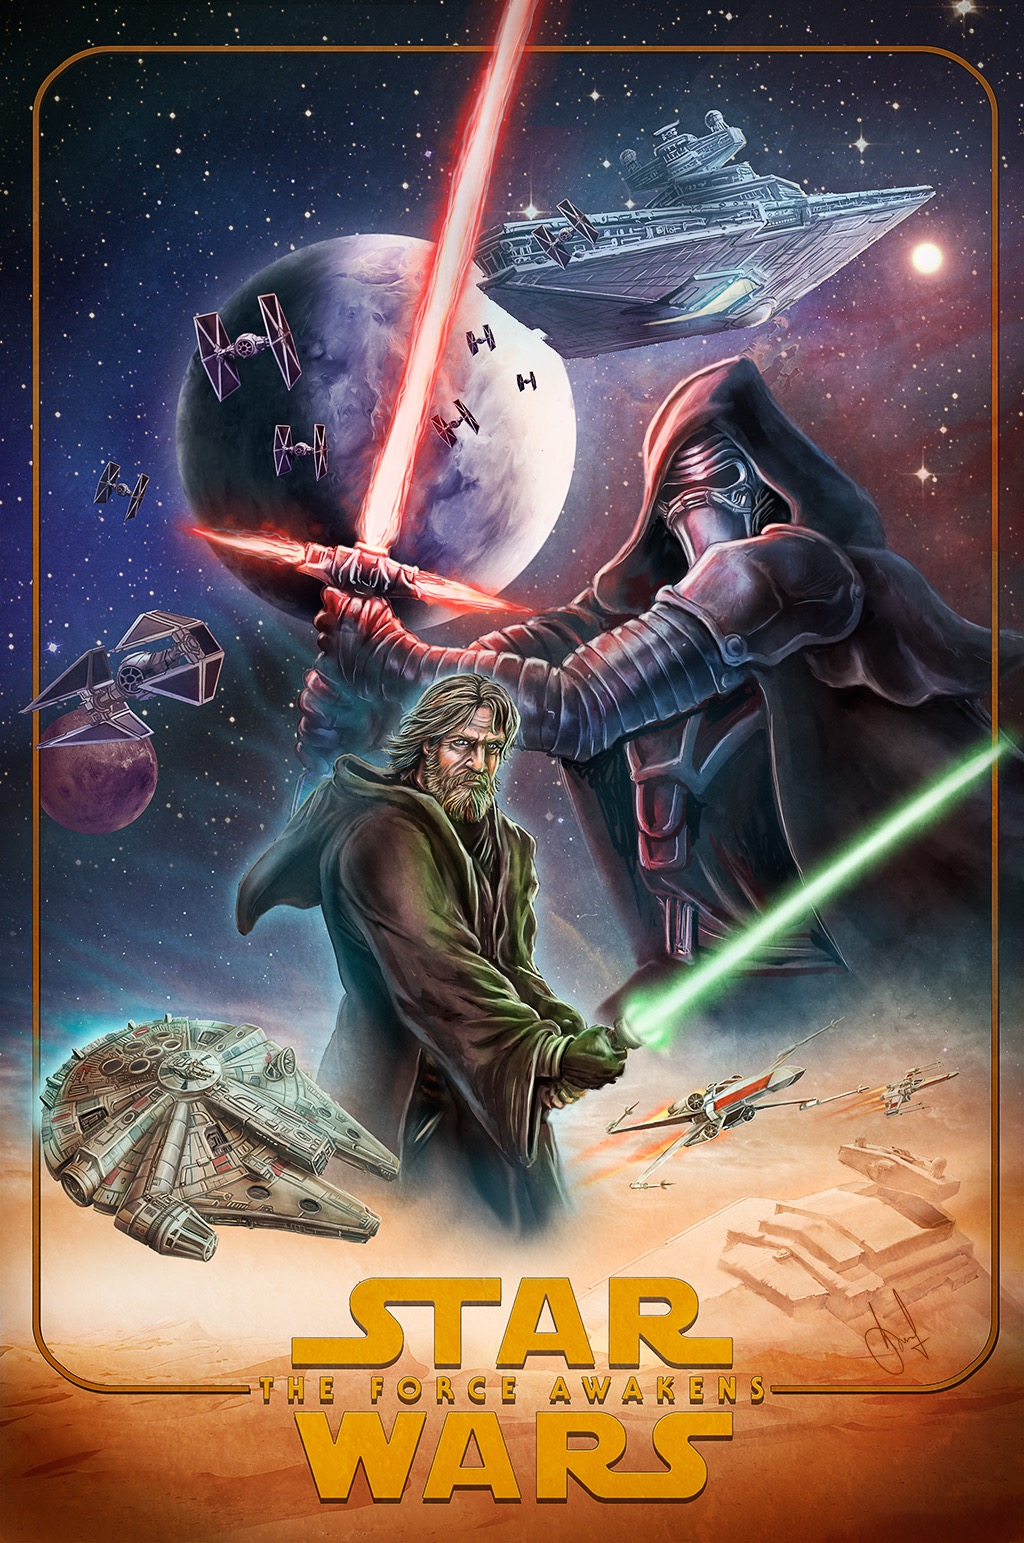 40 Epic Posters for Star Wars : The Force Awakens